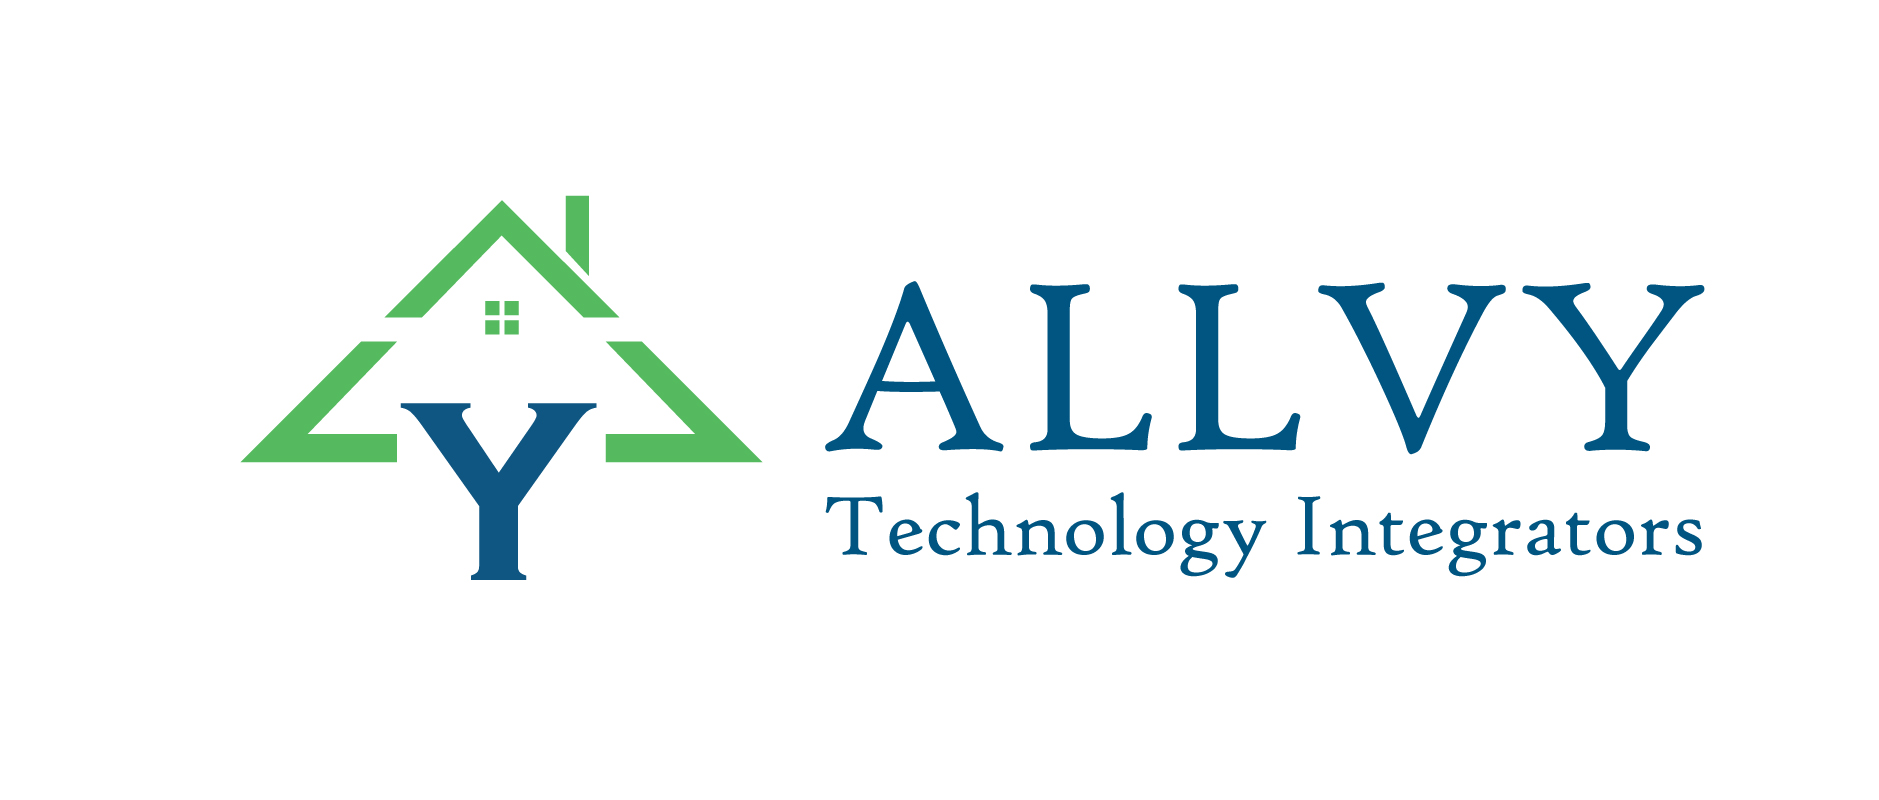 Allvy Technology Integrators